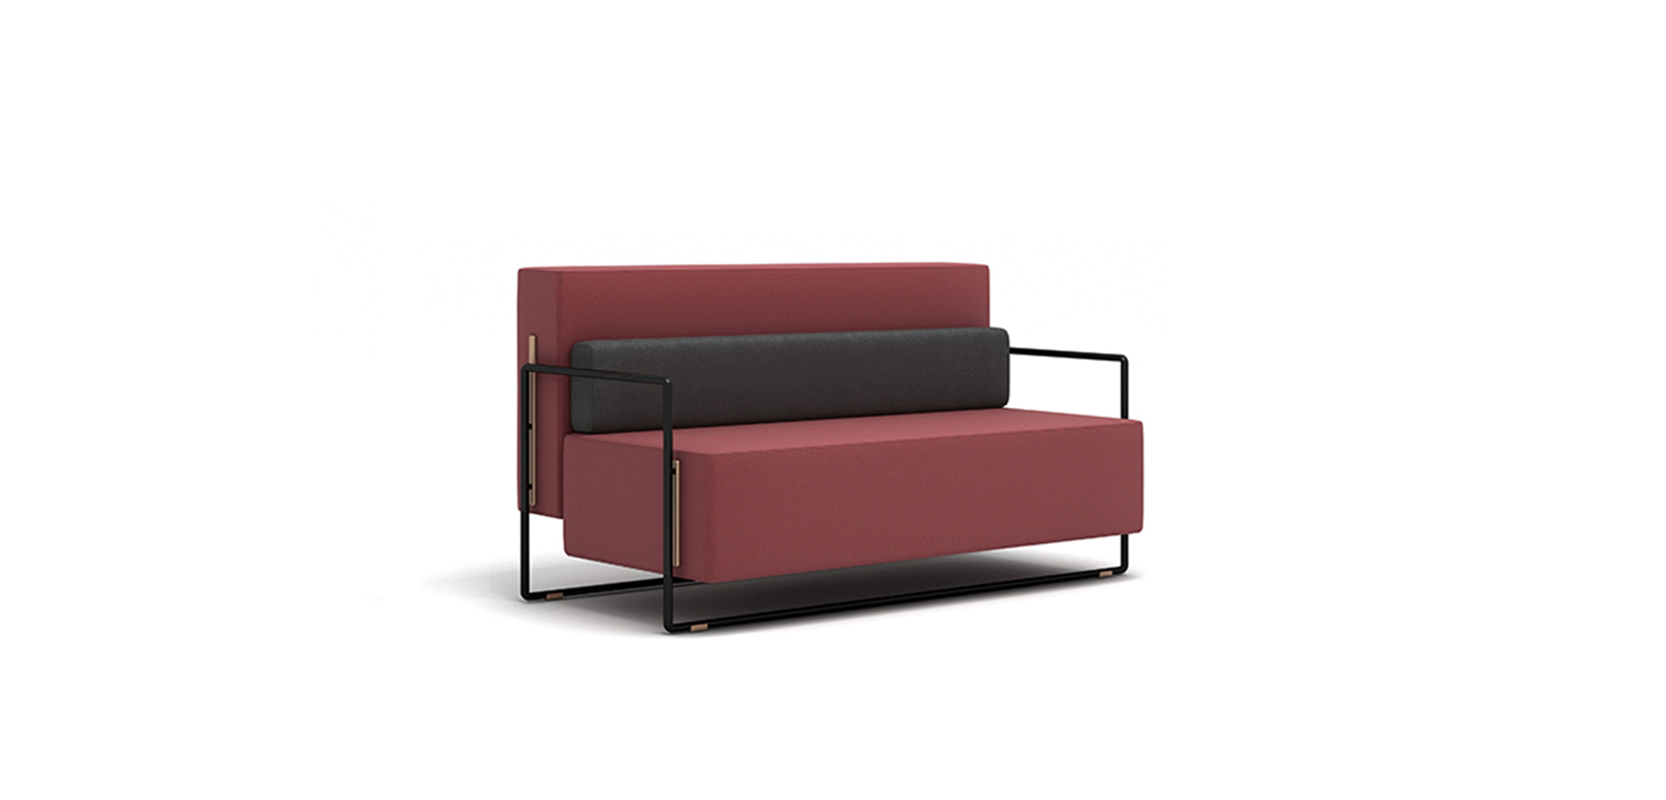 SUIT SOFA BRAND:  FRANK CHOU  WEB:  www.frankchou.com Suit Sofa has more possibilities of function compared with the original single version. The geometry sense make it have stronger visual sense.